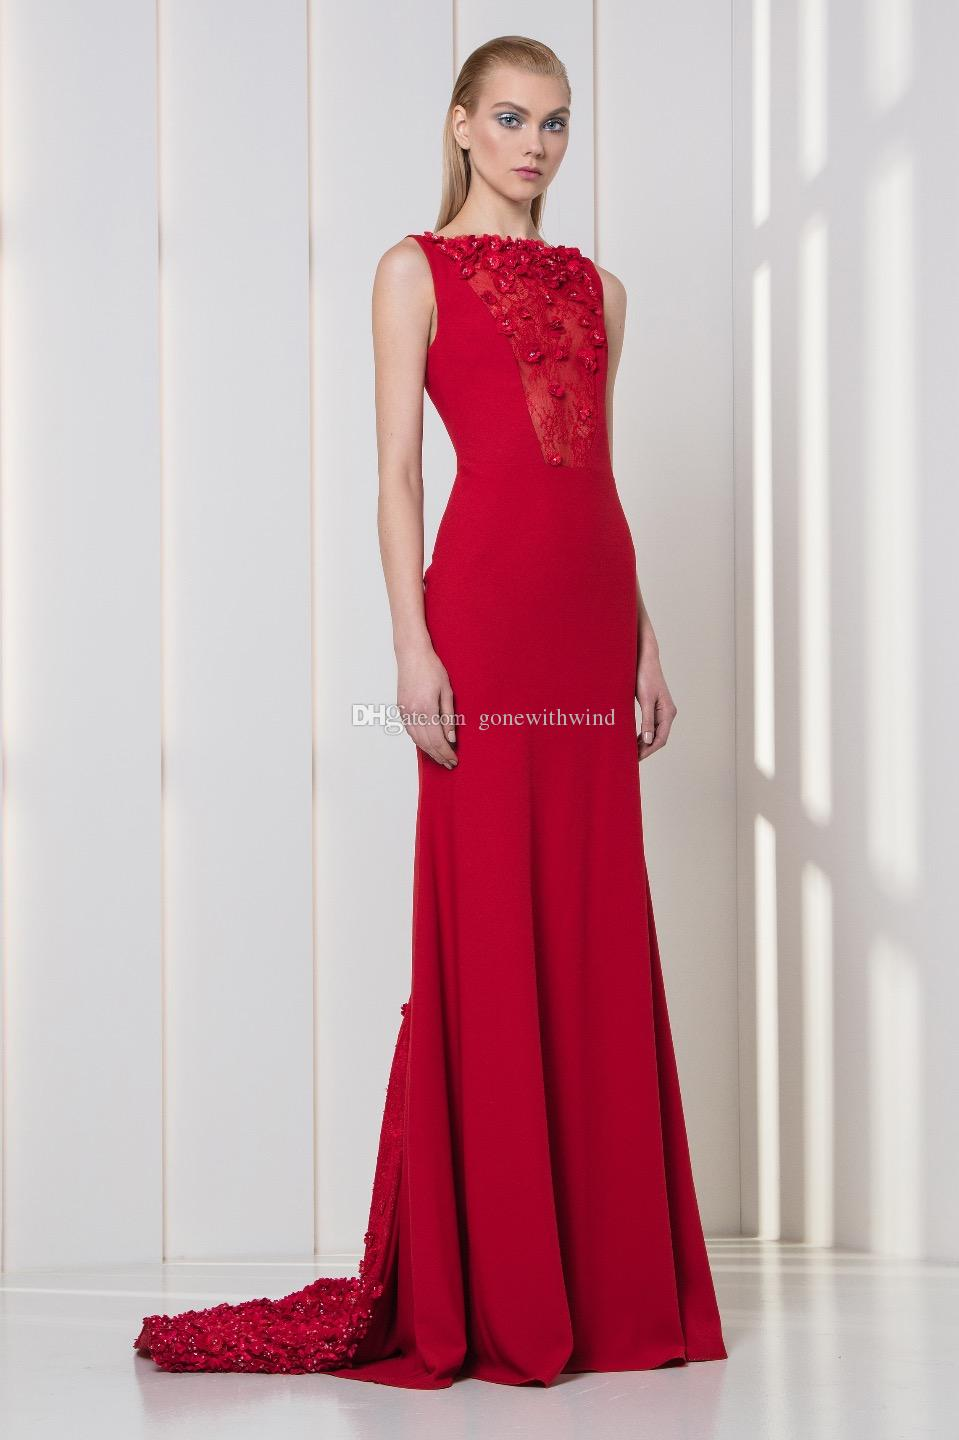 Red Evening Dresses 2018 Tony Ward Dresses Embellished With Pearls ...